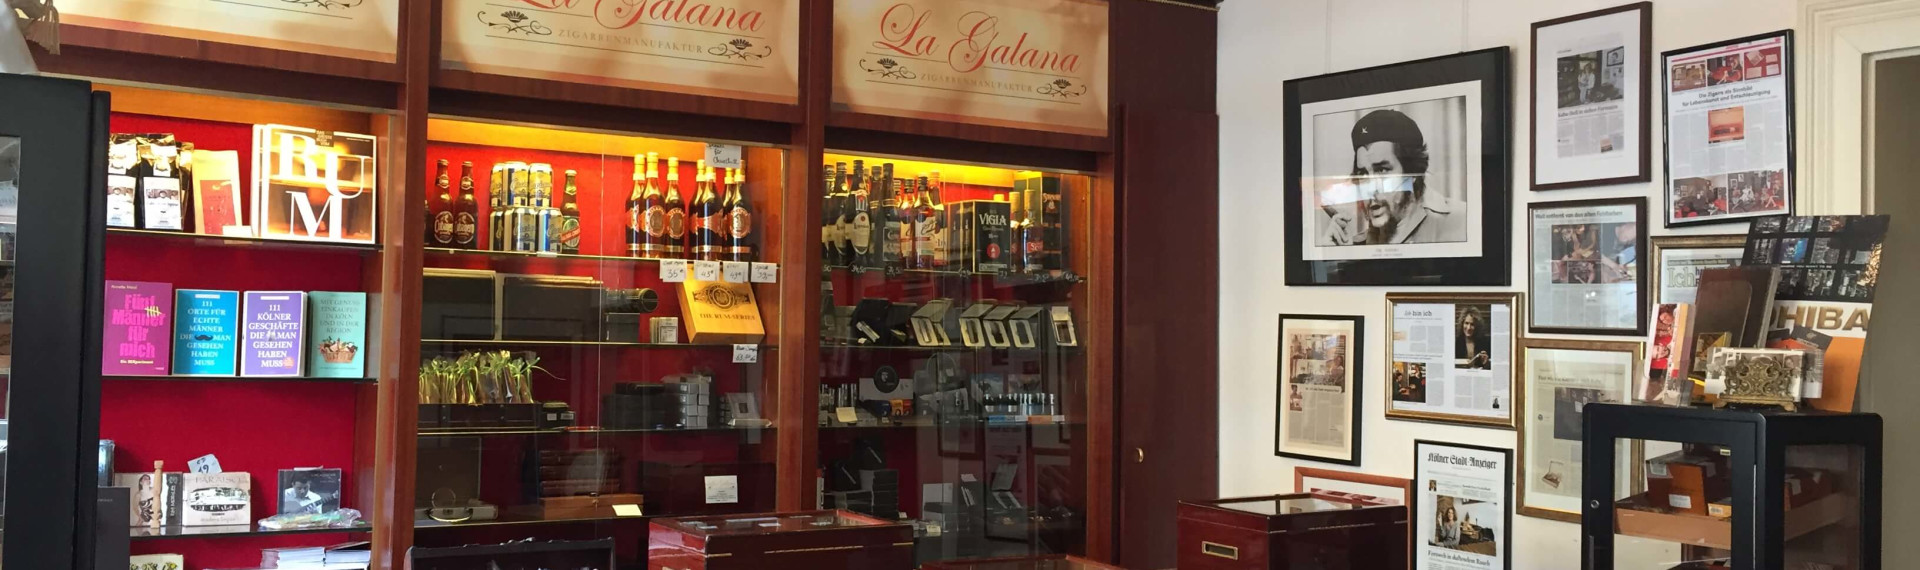 Cologne Cuban Rum and Cigar Salon image